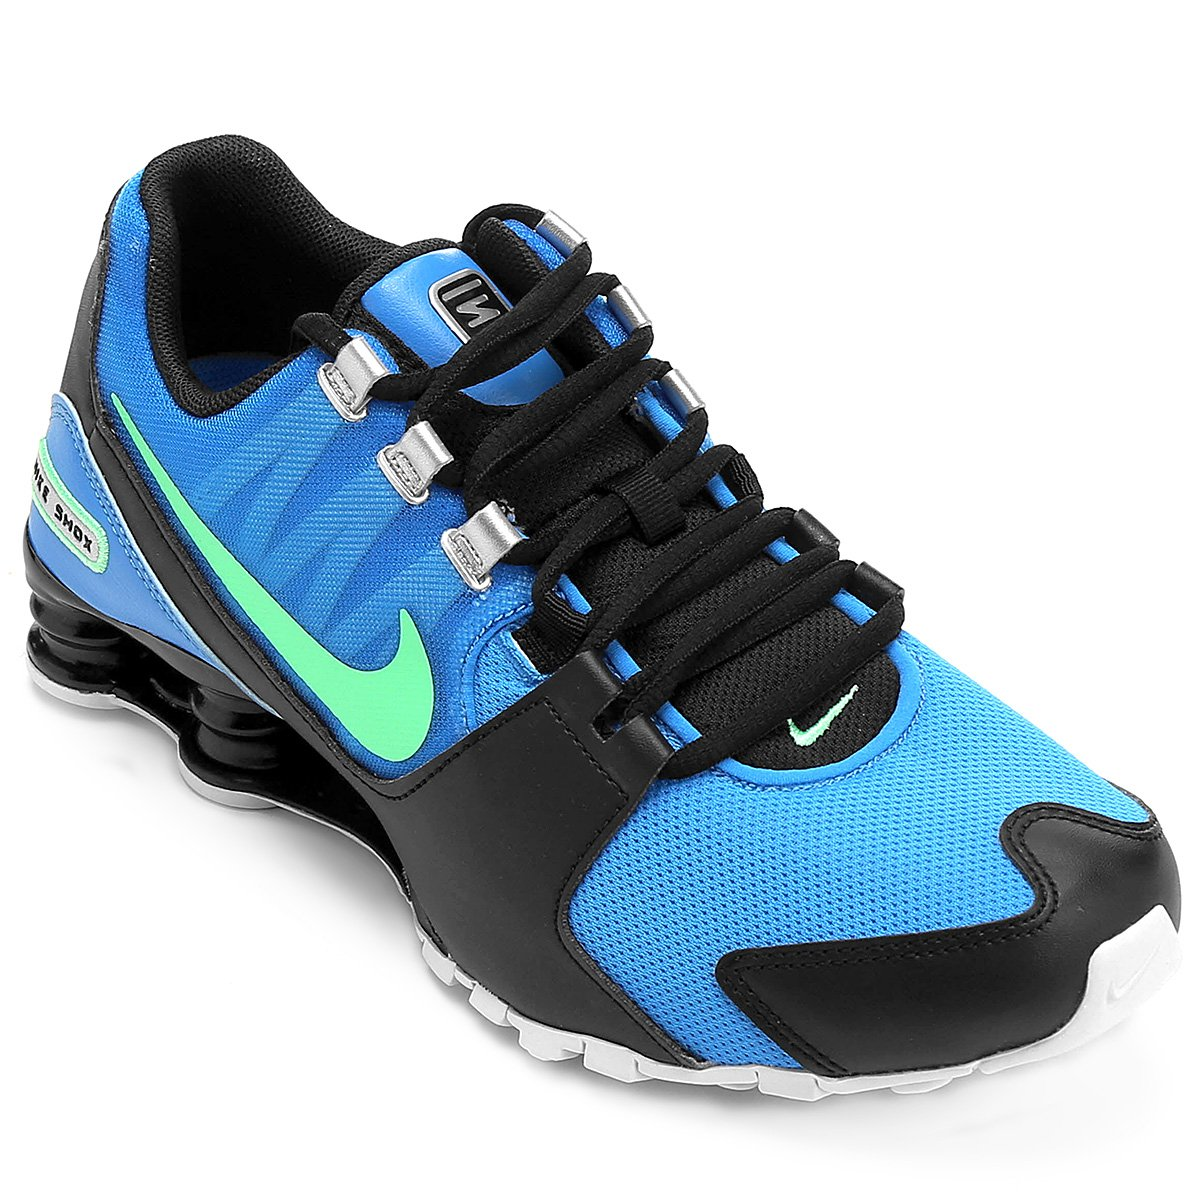 purchase cheap 96be6 36367 ... sale tênis nike shox avenue masculino azulpreto f7e69 25b80 ...